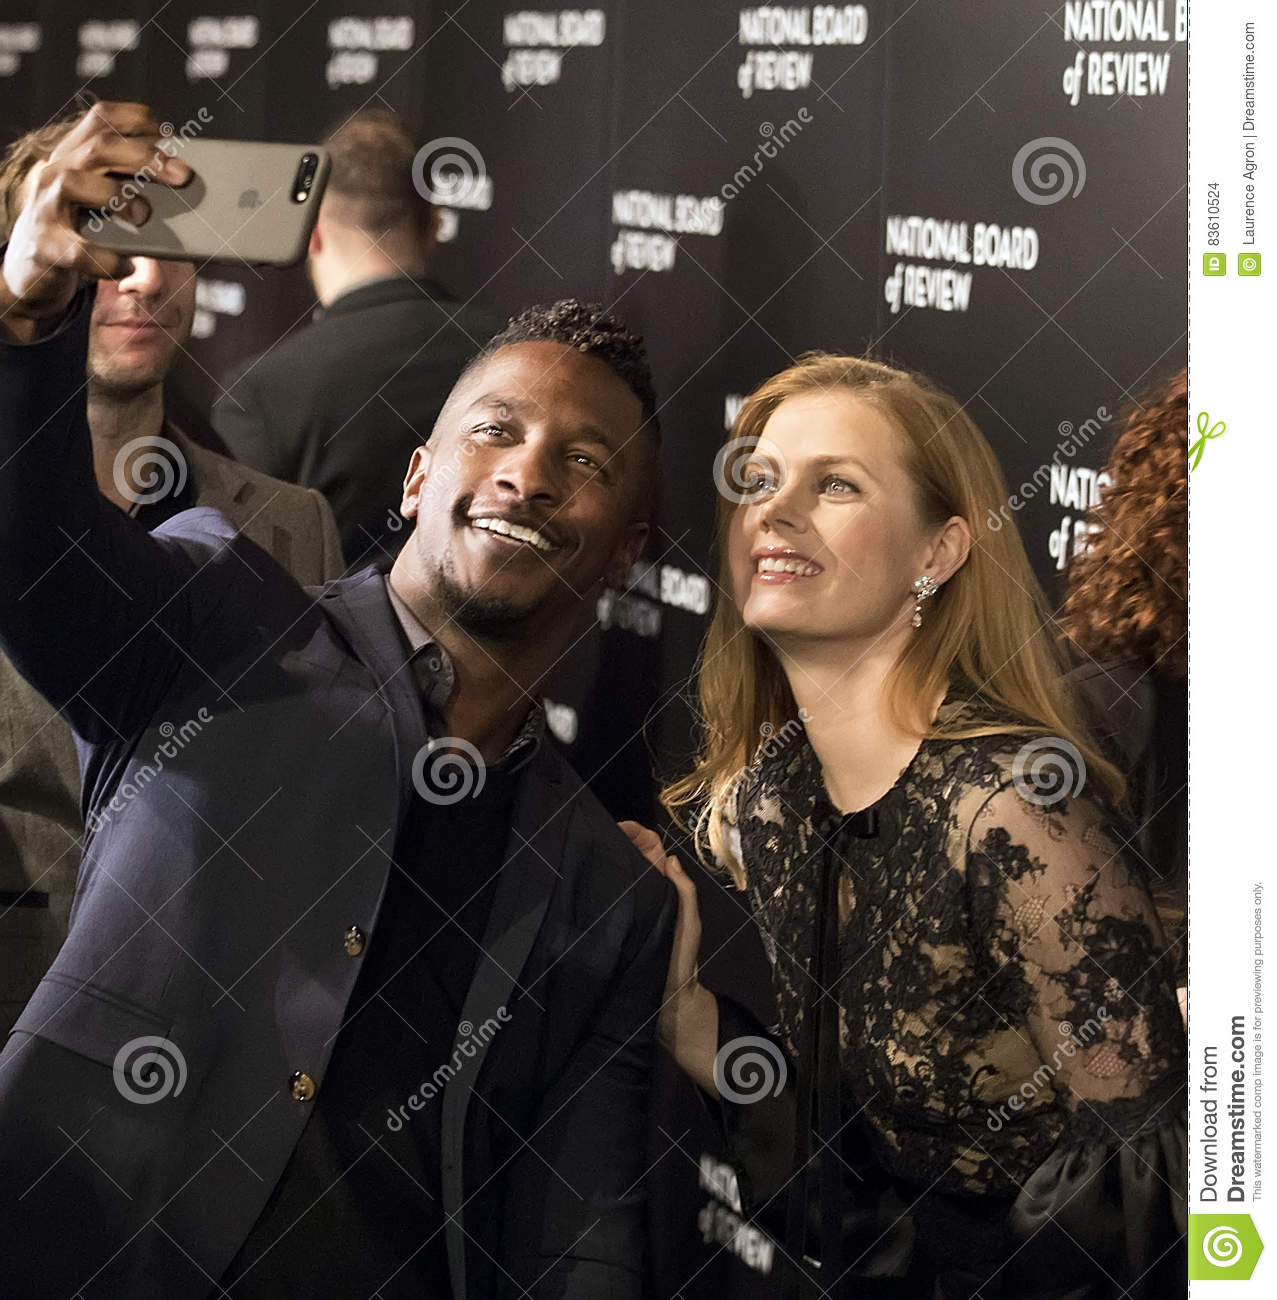 Amy Adams Scores At NBR Film Awards Editorial Stock Image